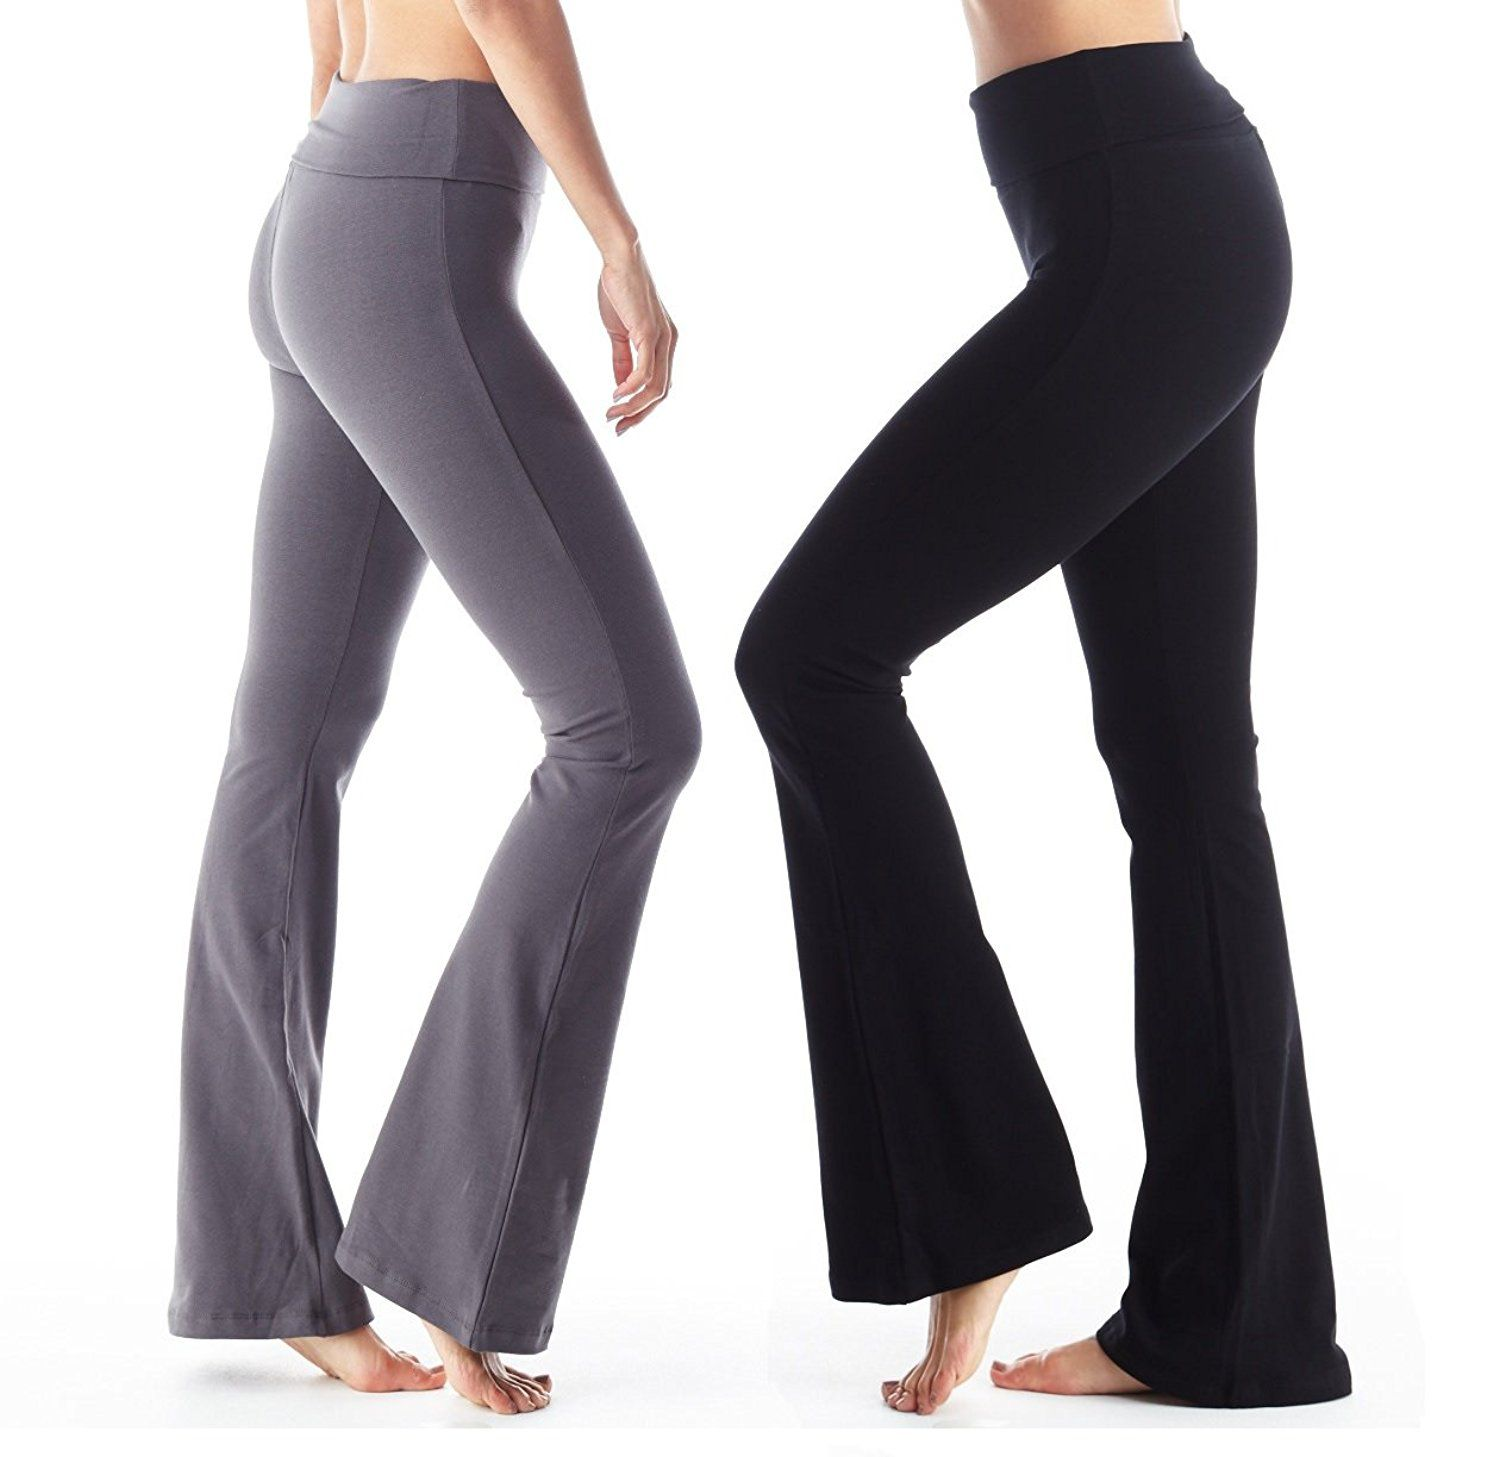 What To Wear With Different Styles Of Yoga Pants